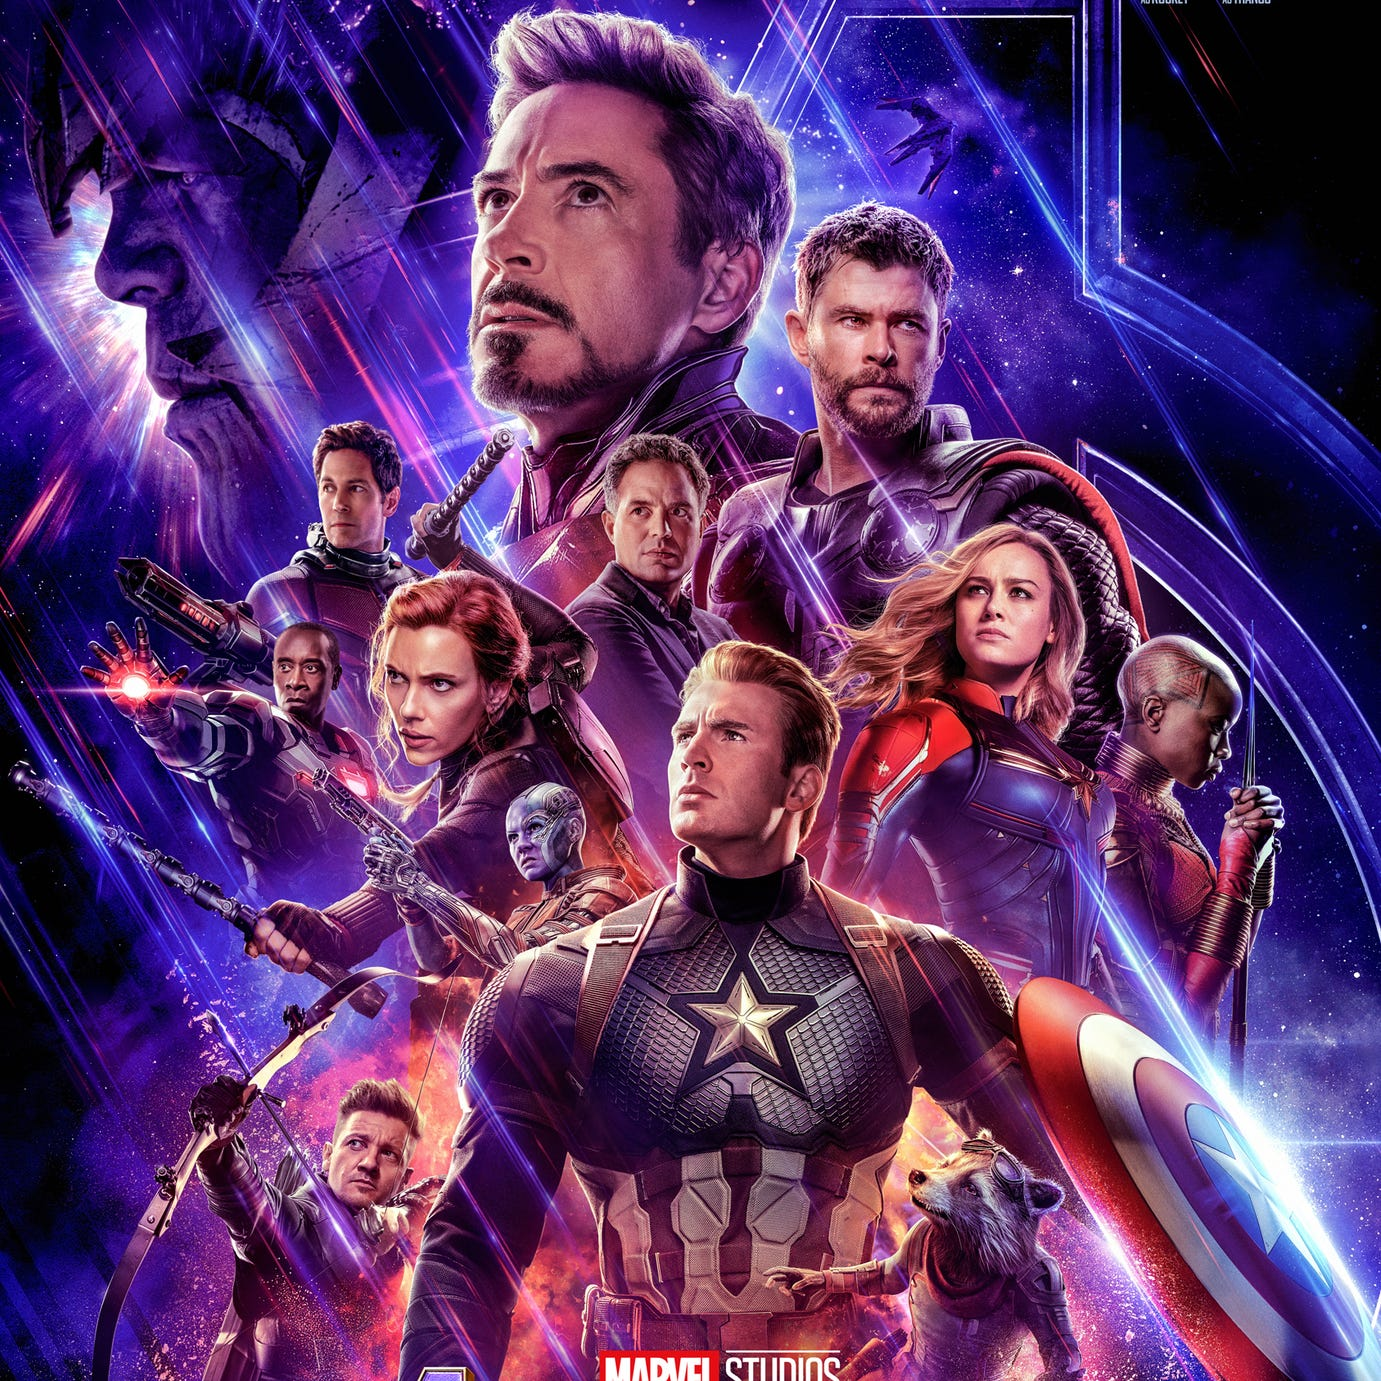 'Avengers: Endgame' crashes ticket sites